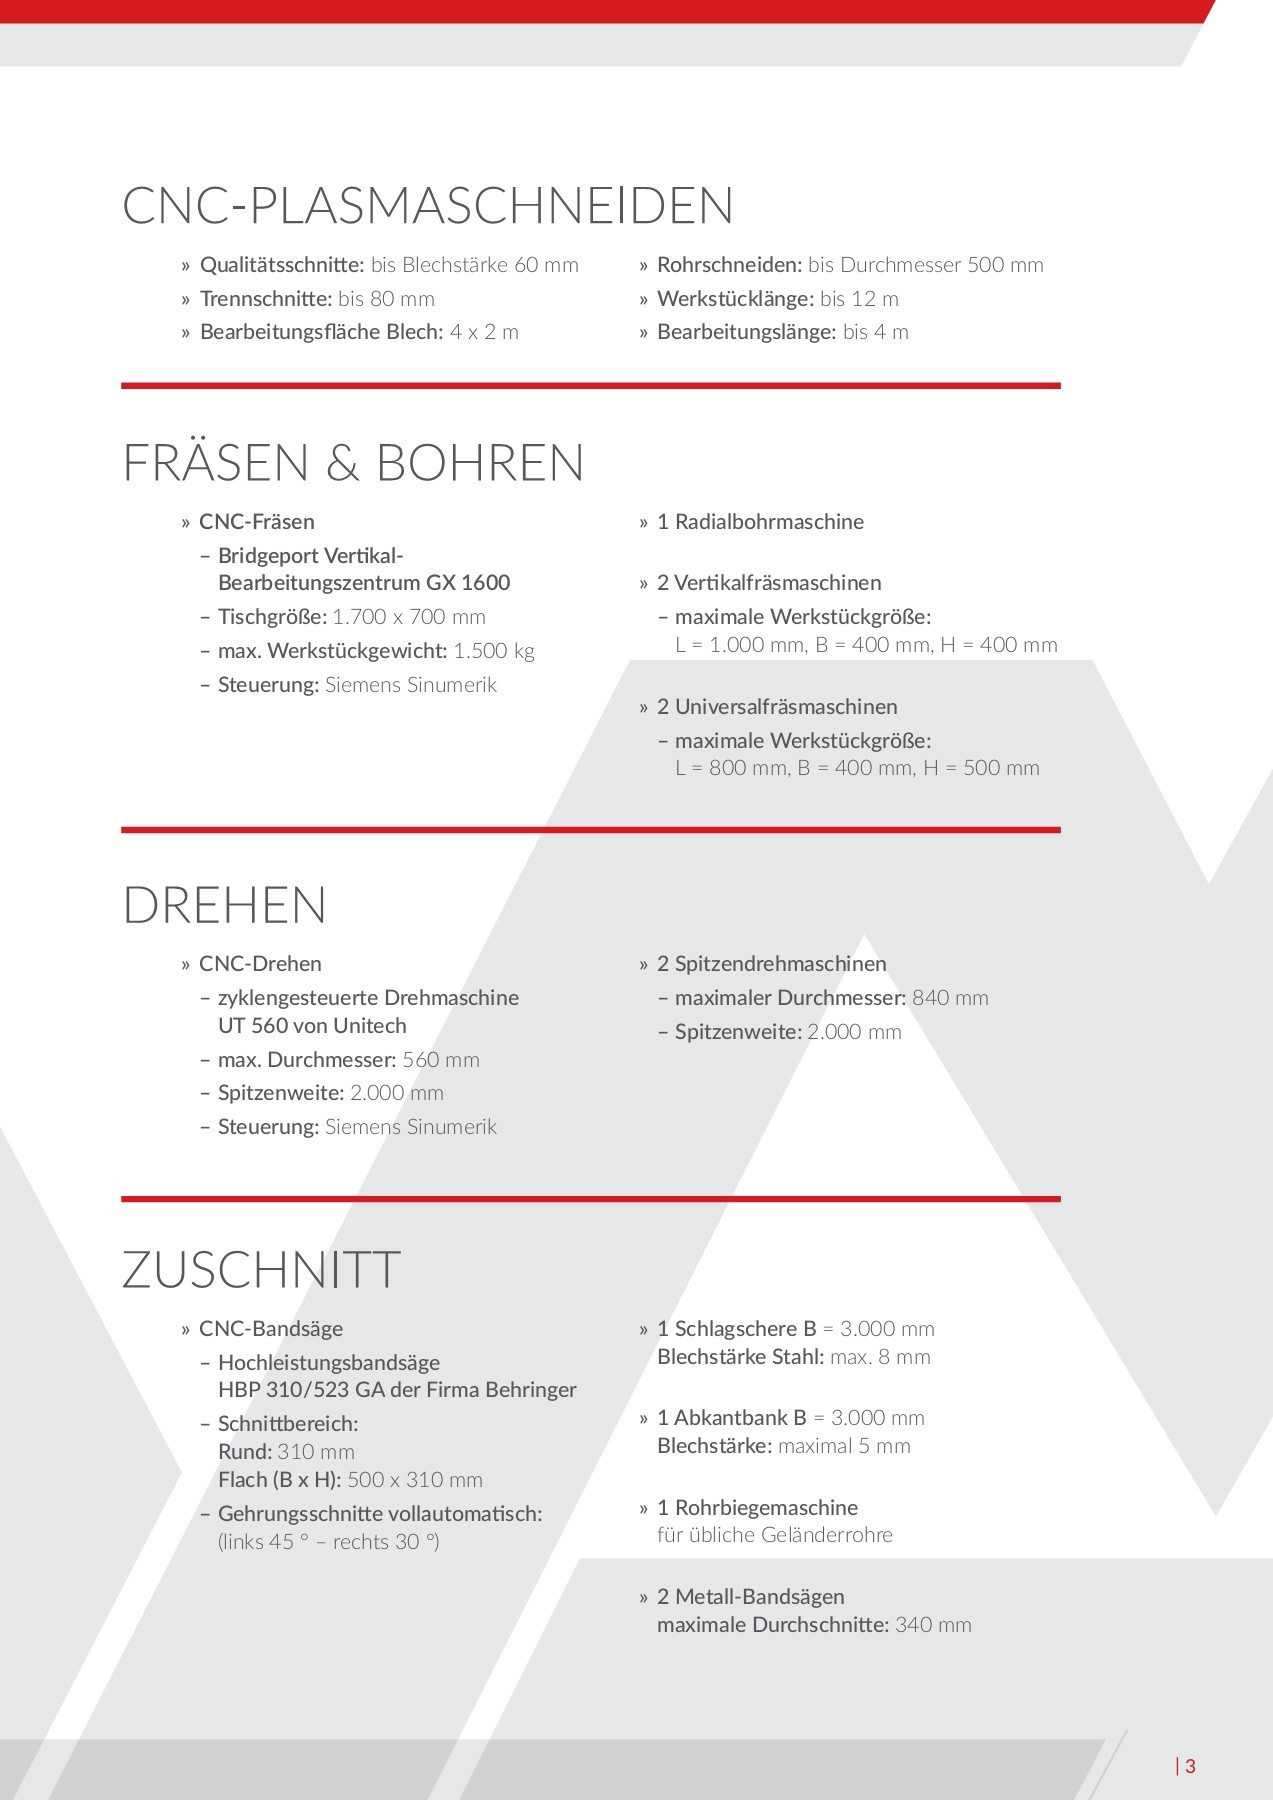 Ams Imagebroschüre_2018_Web Pages 1 - 16 - Text Version | Fliphtml5